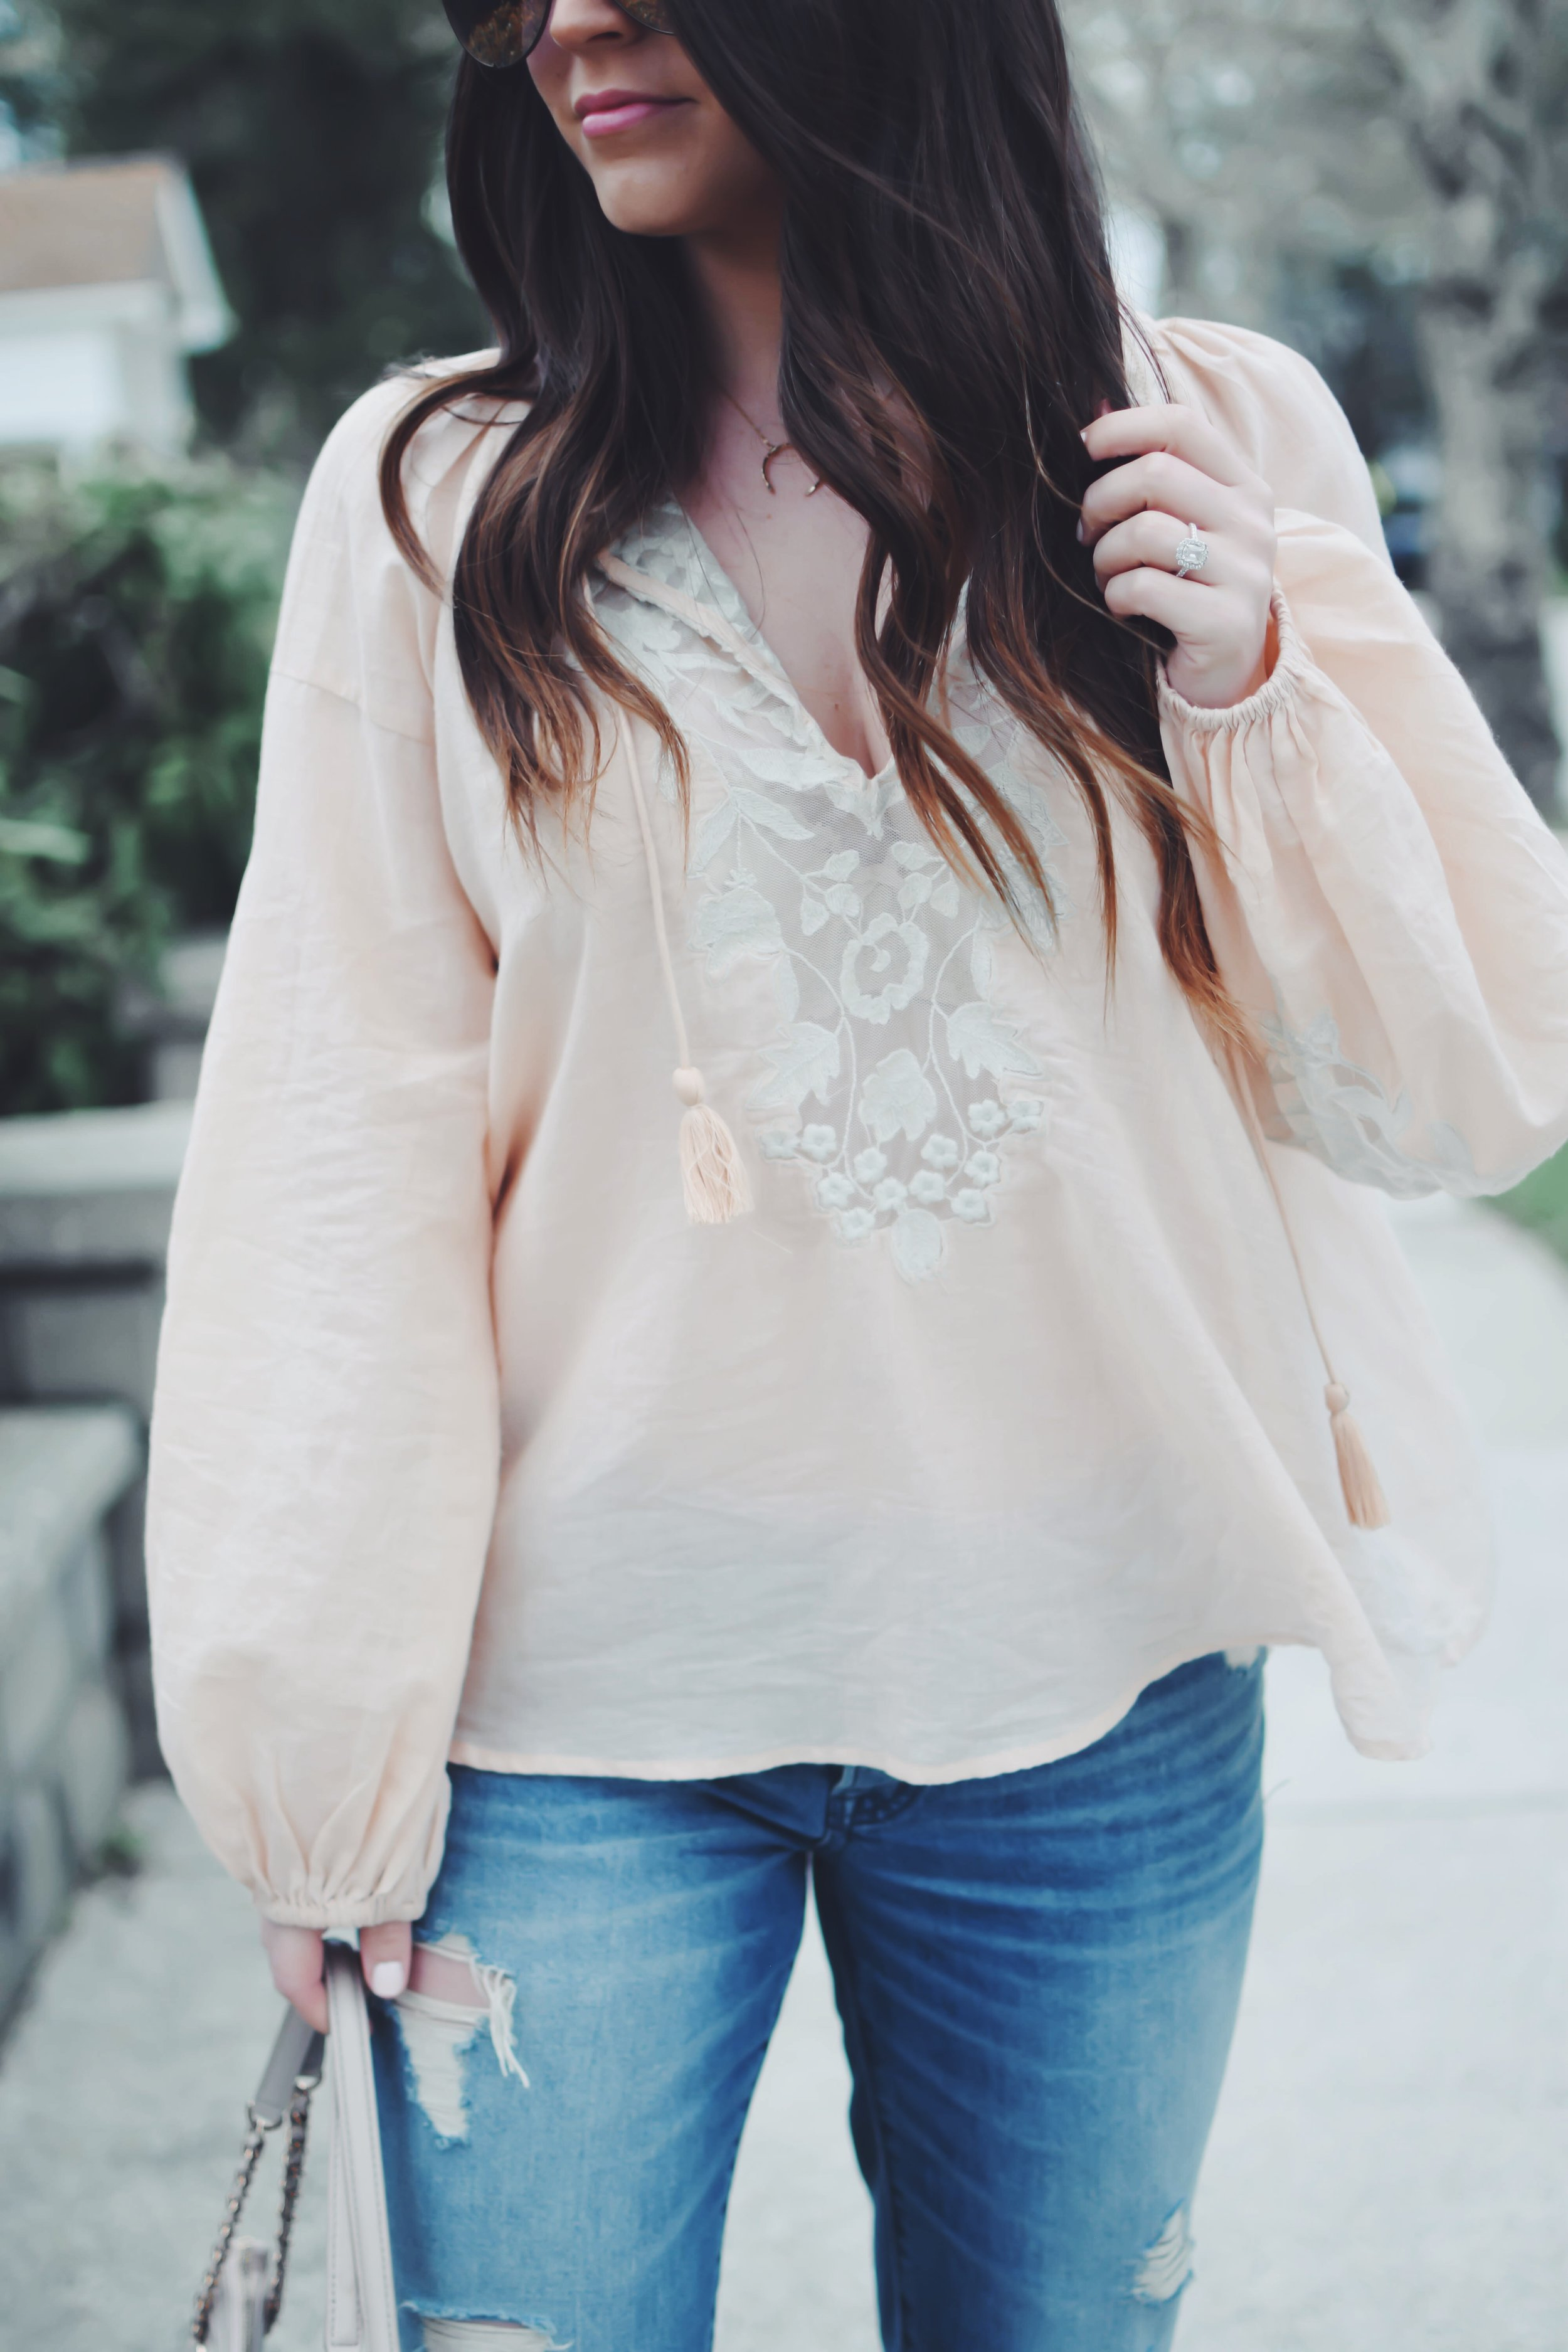 Boho Top with Lace Detail | Pine Barren Beauty | spring fashion, spring outfit idea, spring outfit inspiration, free people flowy top, Abercrombie distressed denim, tory burch handbag